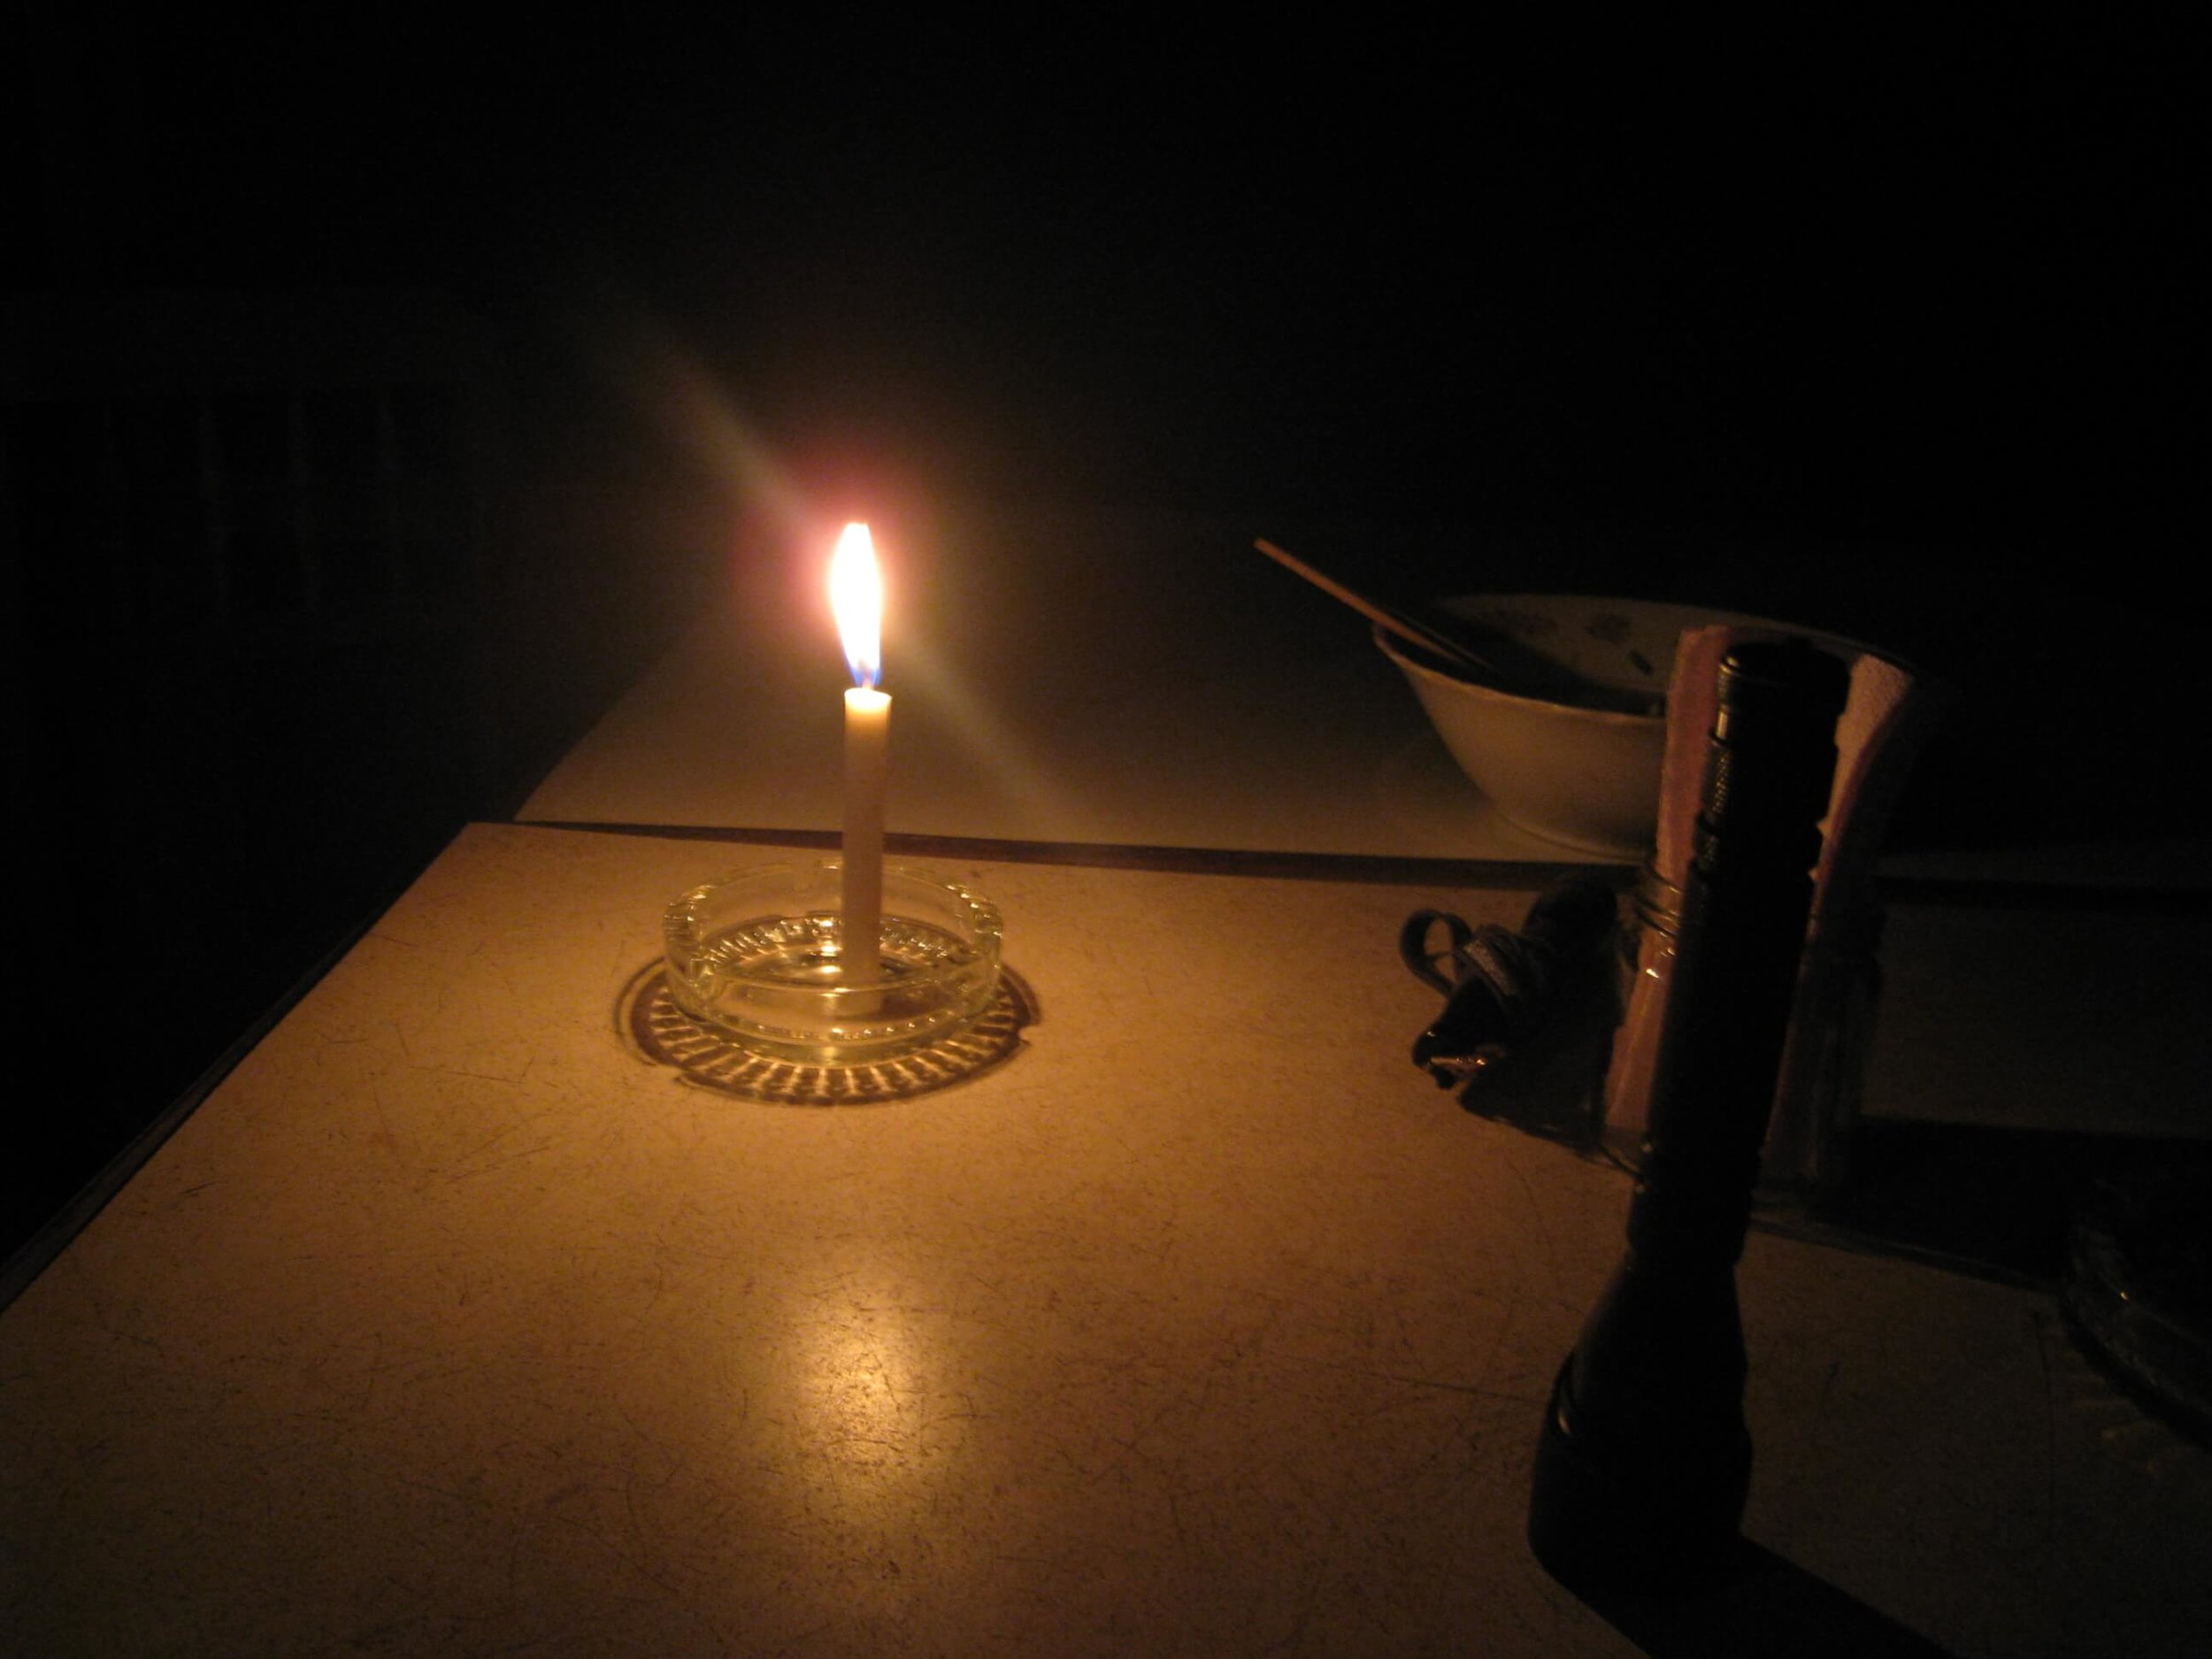 Make Do with what we had: a candle